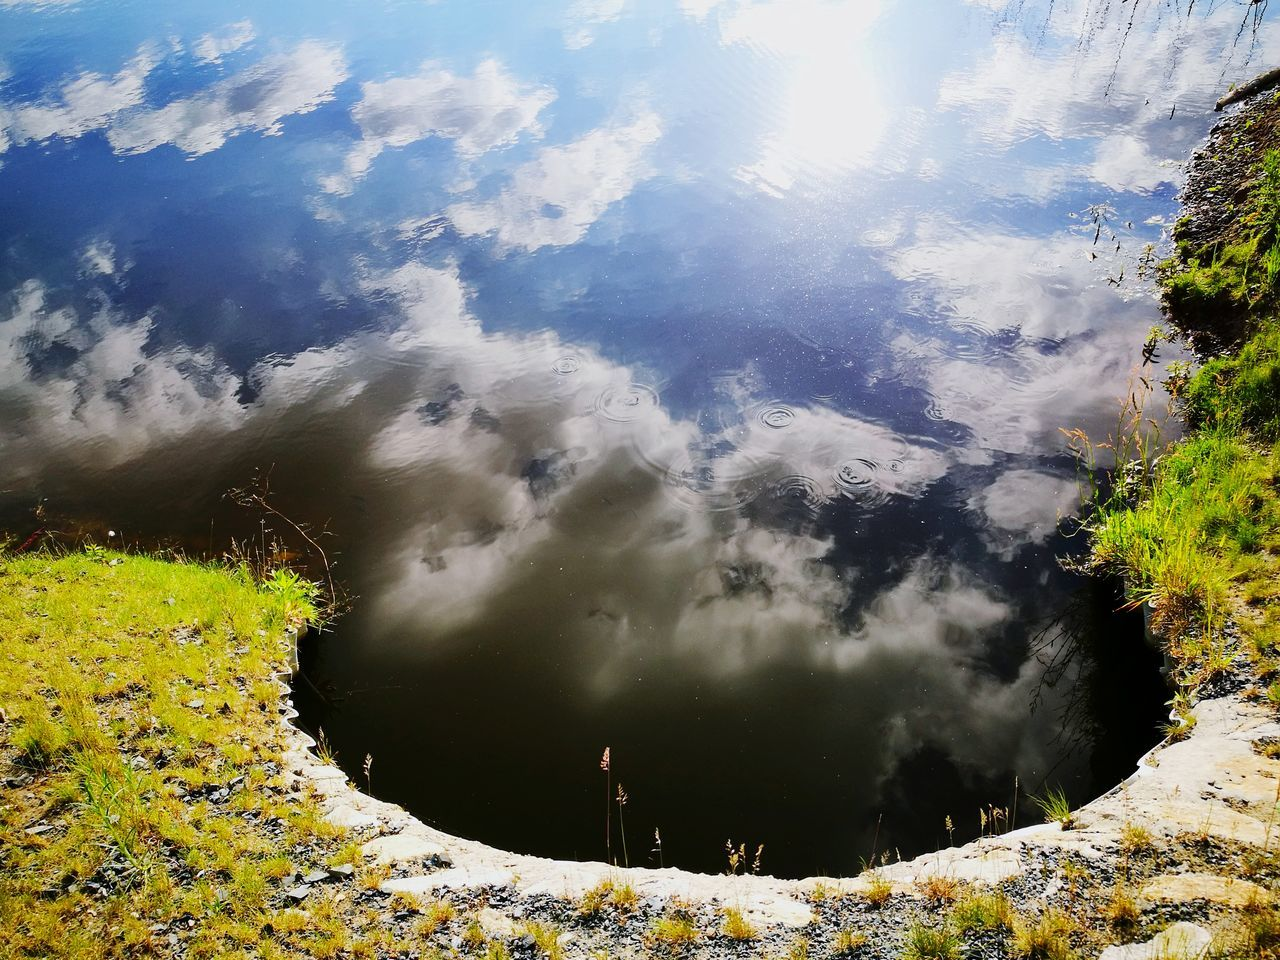 Water No People Nature Lake Outdoors Day Mountain Beauty In Nature Tree Flood Sky Sunlight Nature Landscape Chill Forest EyeEm Best Shots - Nature Summer EyeEmNewHere Reflection